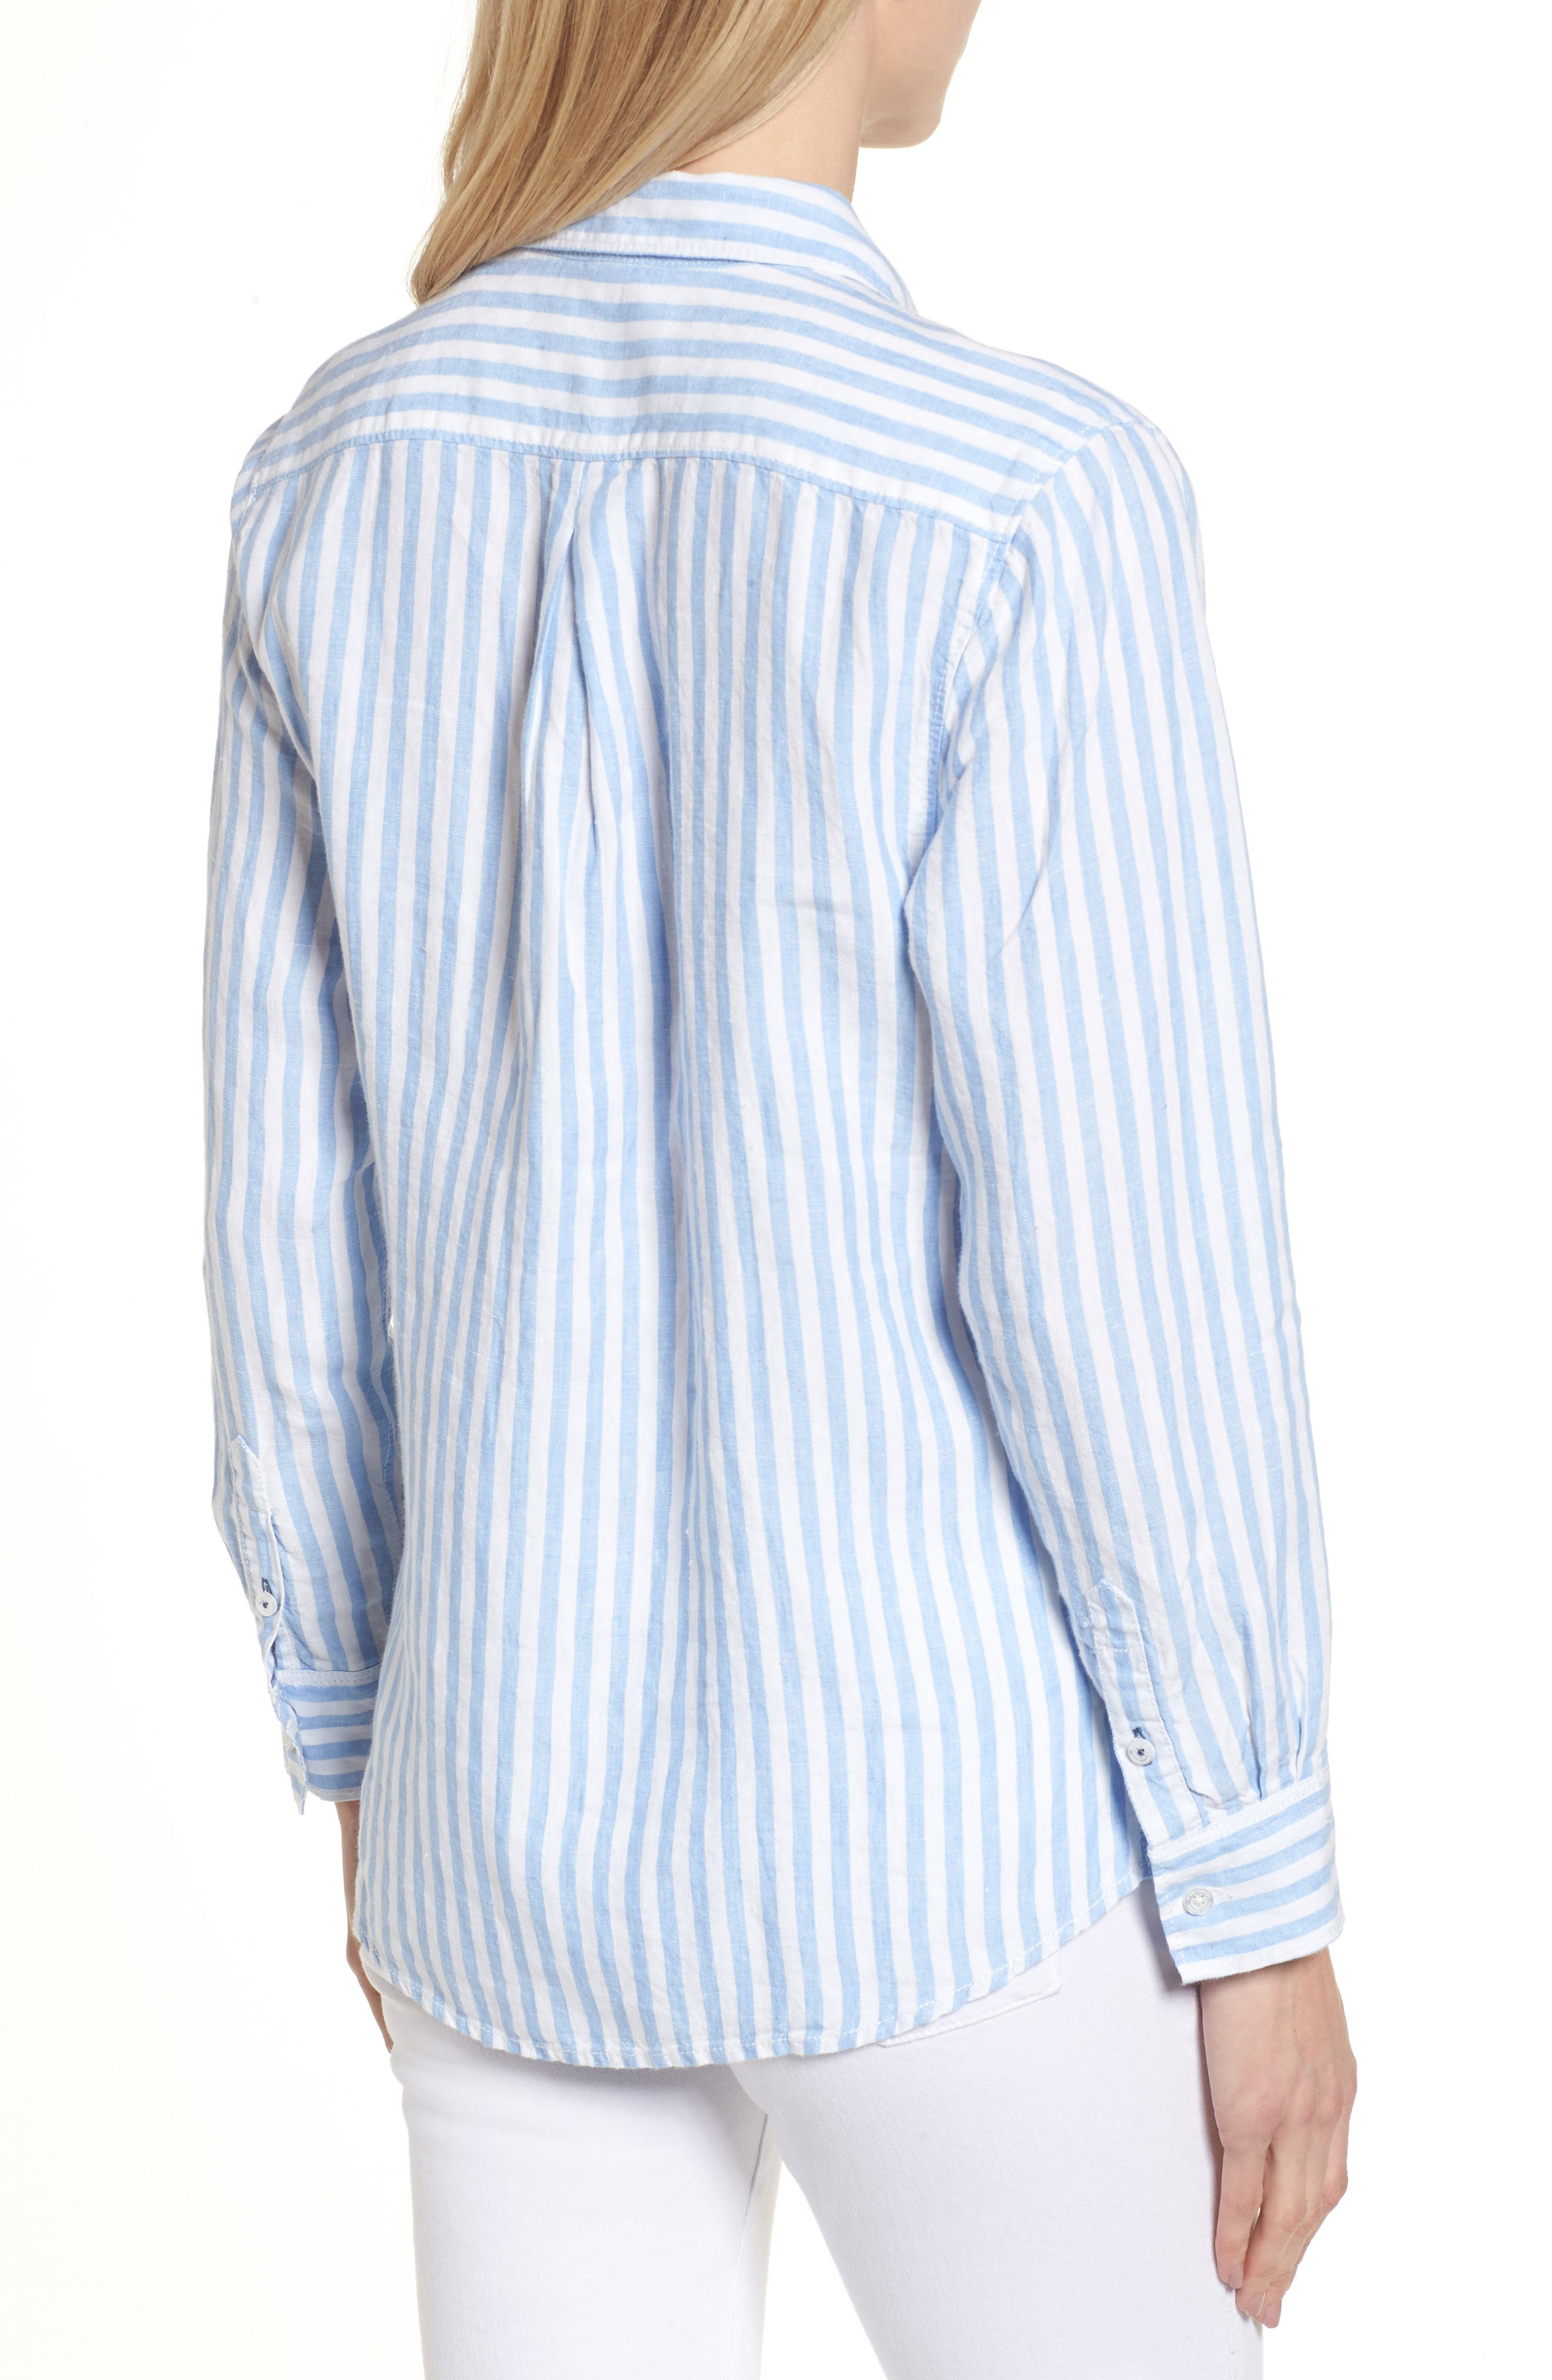 Cabana Stripe Button-Up Top,                             Alternate thumbnail 2, color,                             DUSTY LUPINE